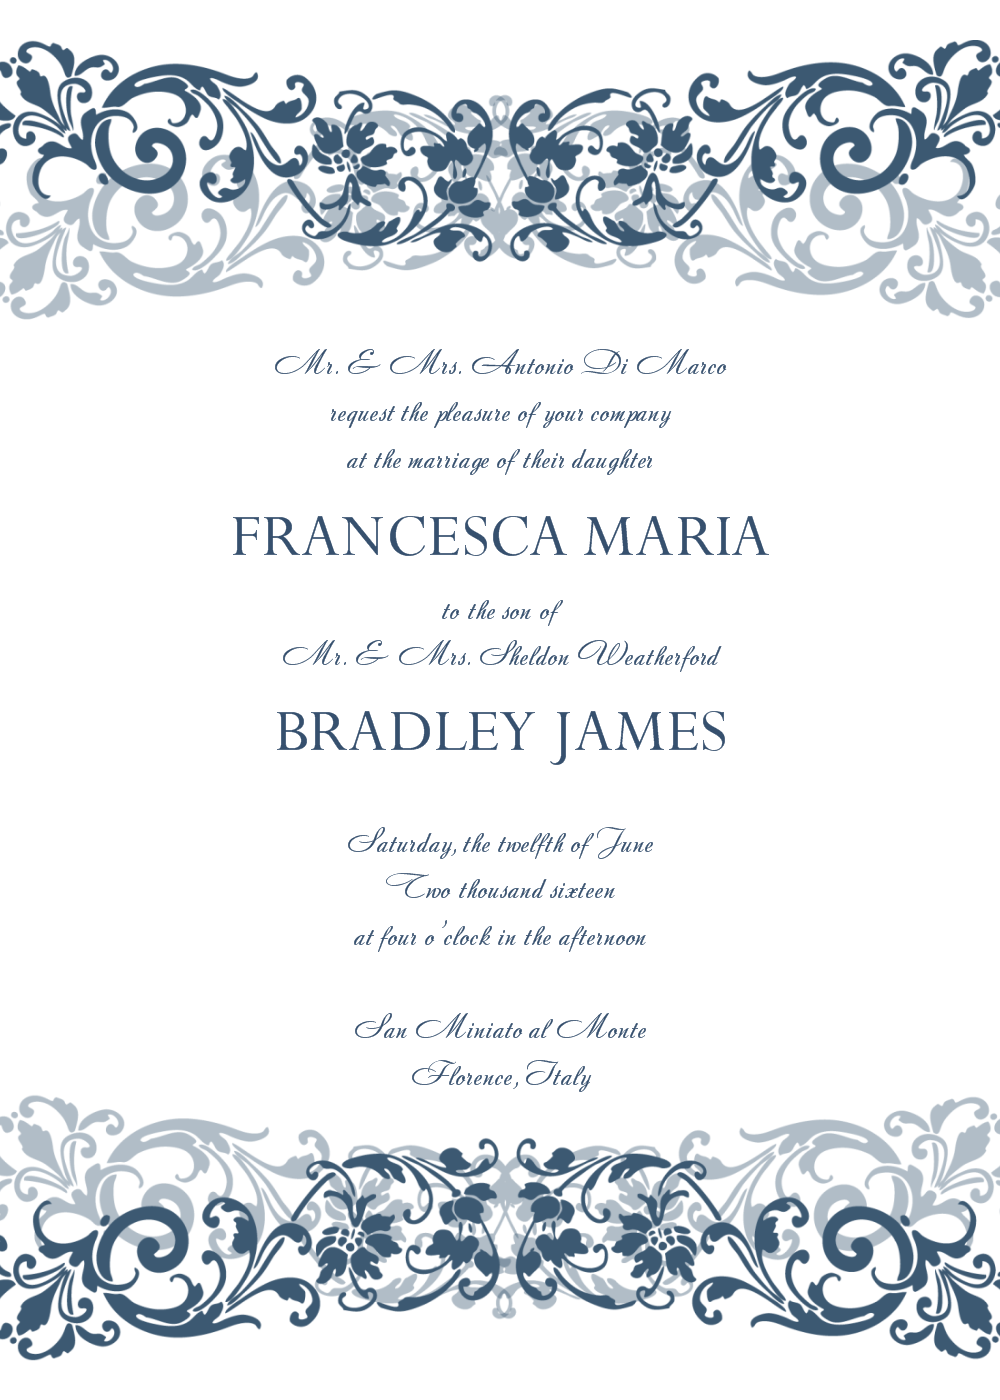 30 Free Wedding Invitations Templates – Invitation Templete